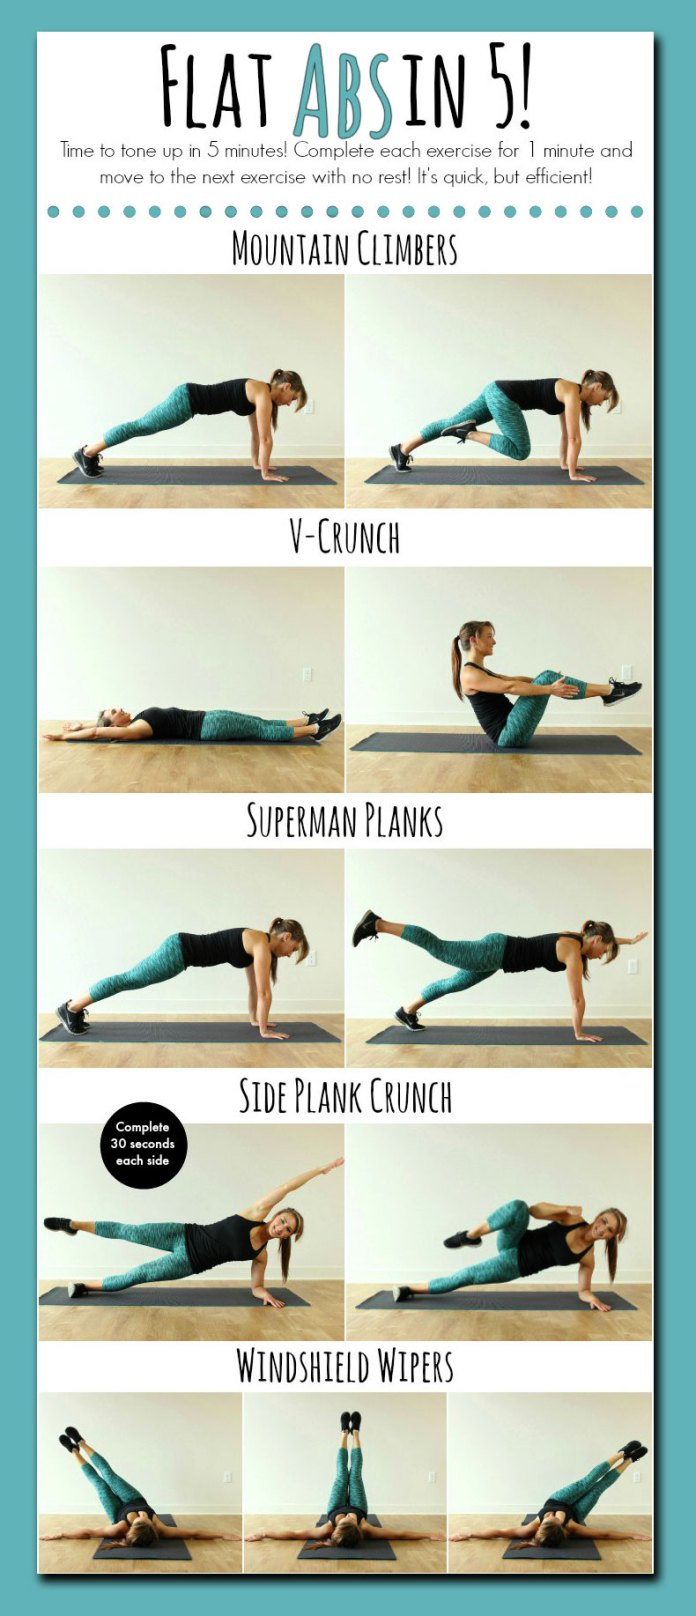 abs workout in 5 minutes. six pack exercises